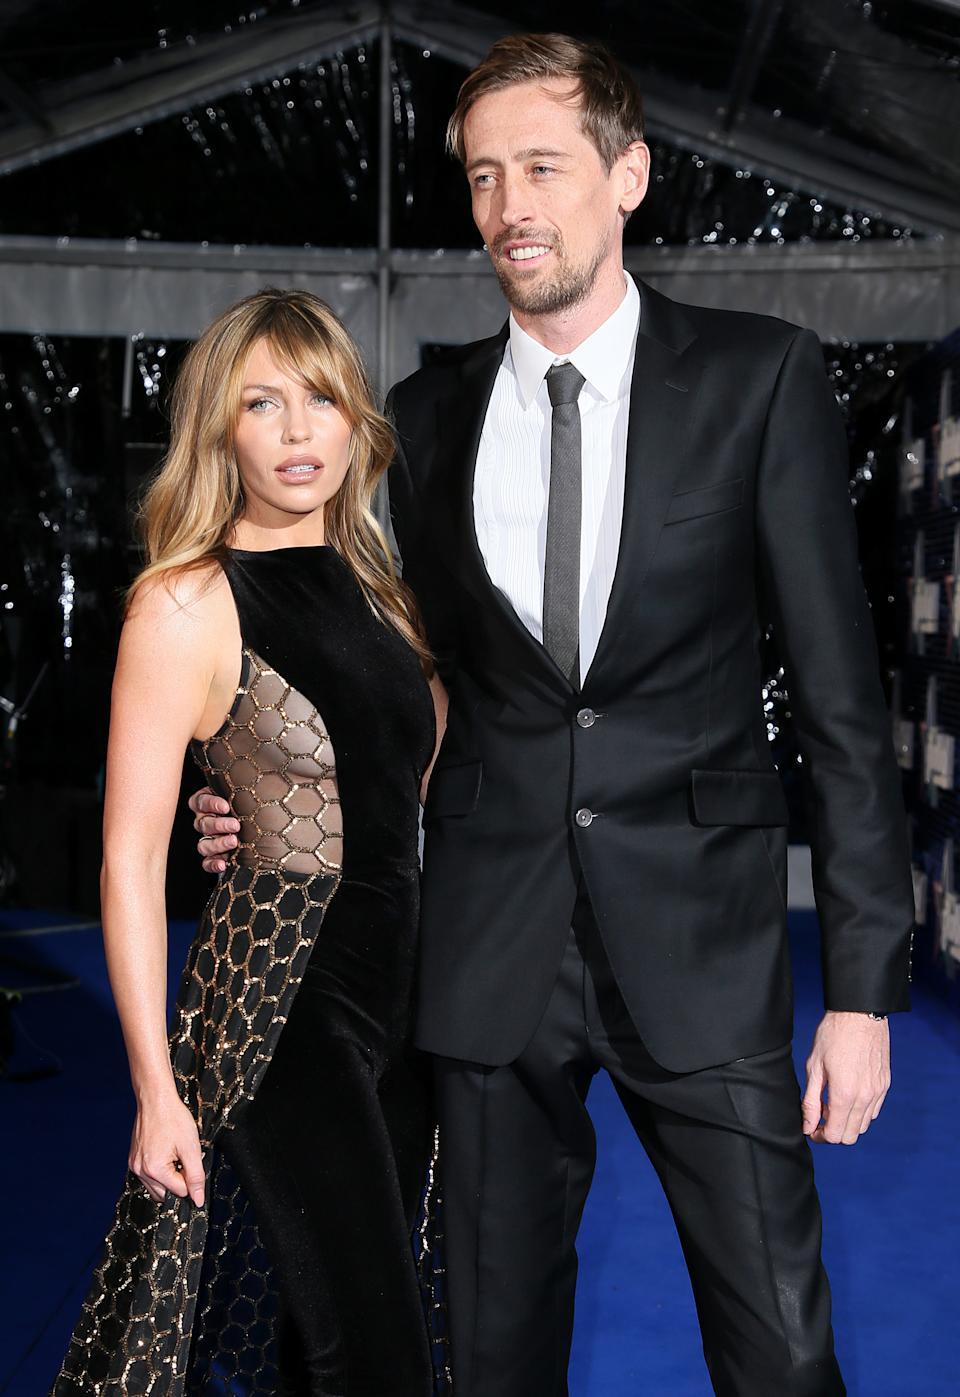 Abbey Clancy and Peter Crouch attends The Global Awards, a brand new awards show hosted by Global, the Media & Entertainment group, at London's Eventim Apollo Hammersmith. PRESS ASSOCIATION Photo. Picture date: Thursday March 1, 2018. See PA story SHOWBIZ Global. Photo credit should read: Joel Ryan/PA Wire